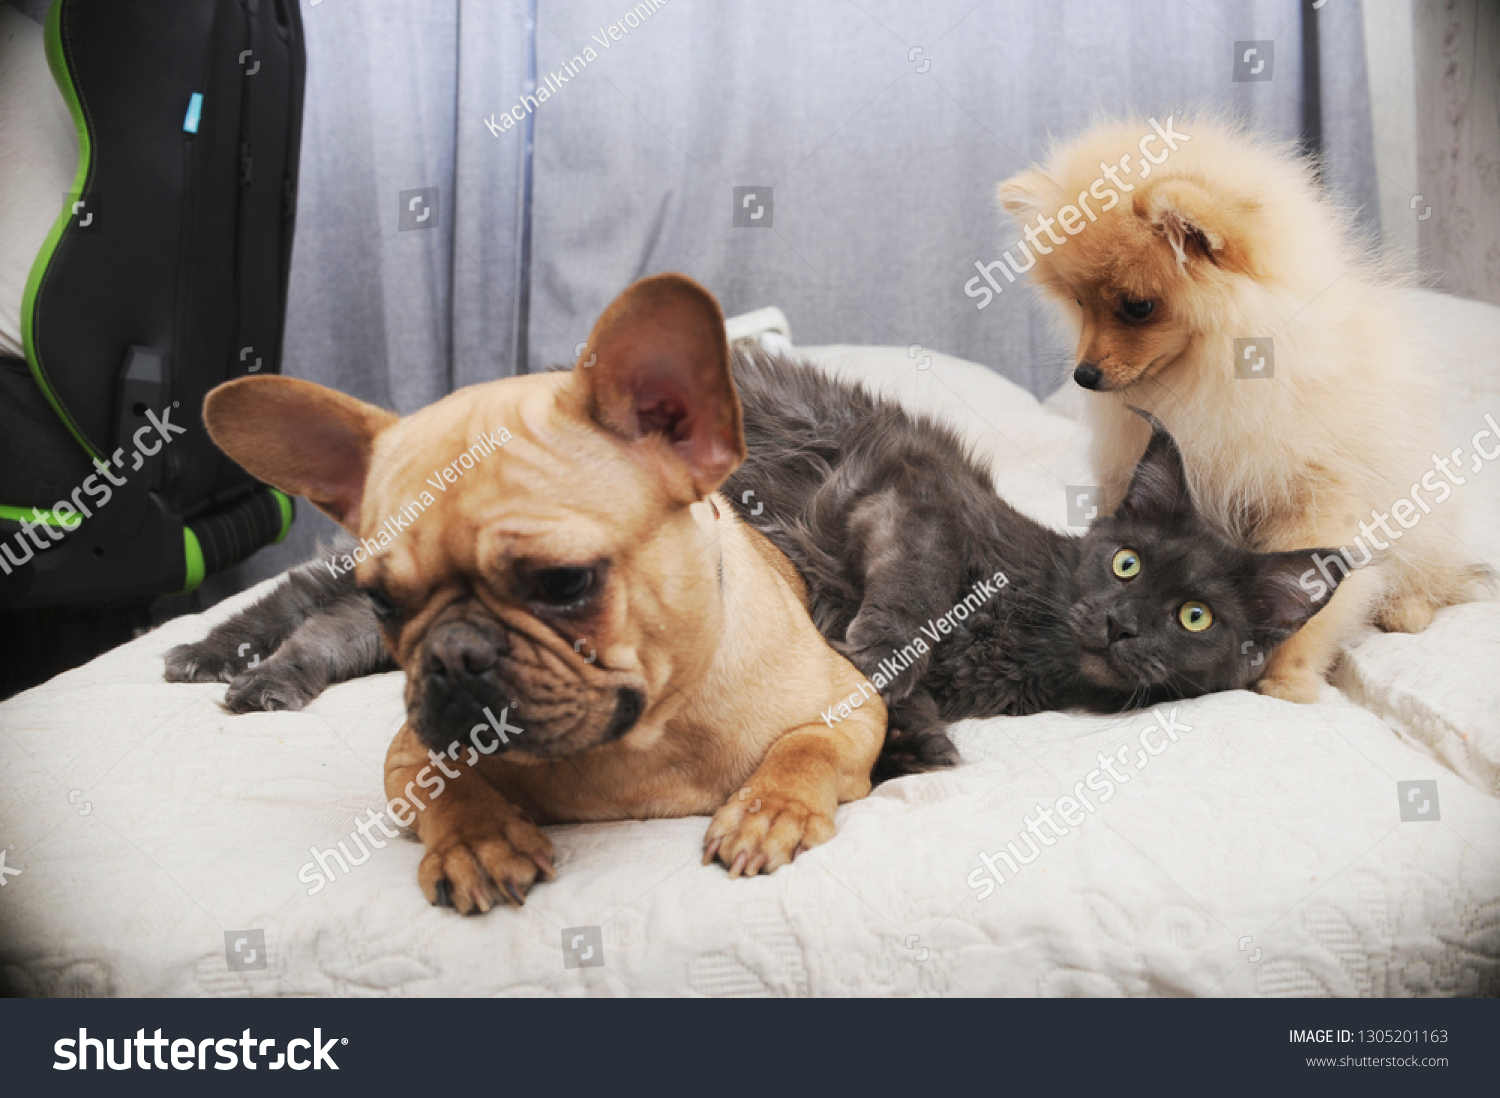 Adorable Dogs Cute Cat Lying Together Stock Photo Edit Now 1305201163